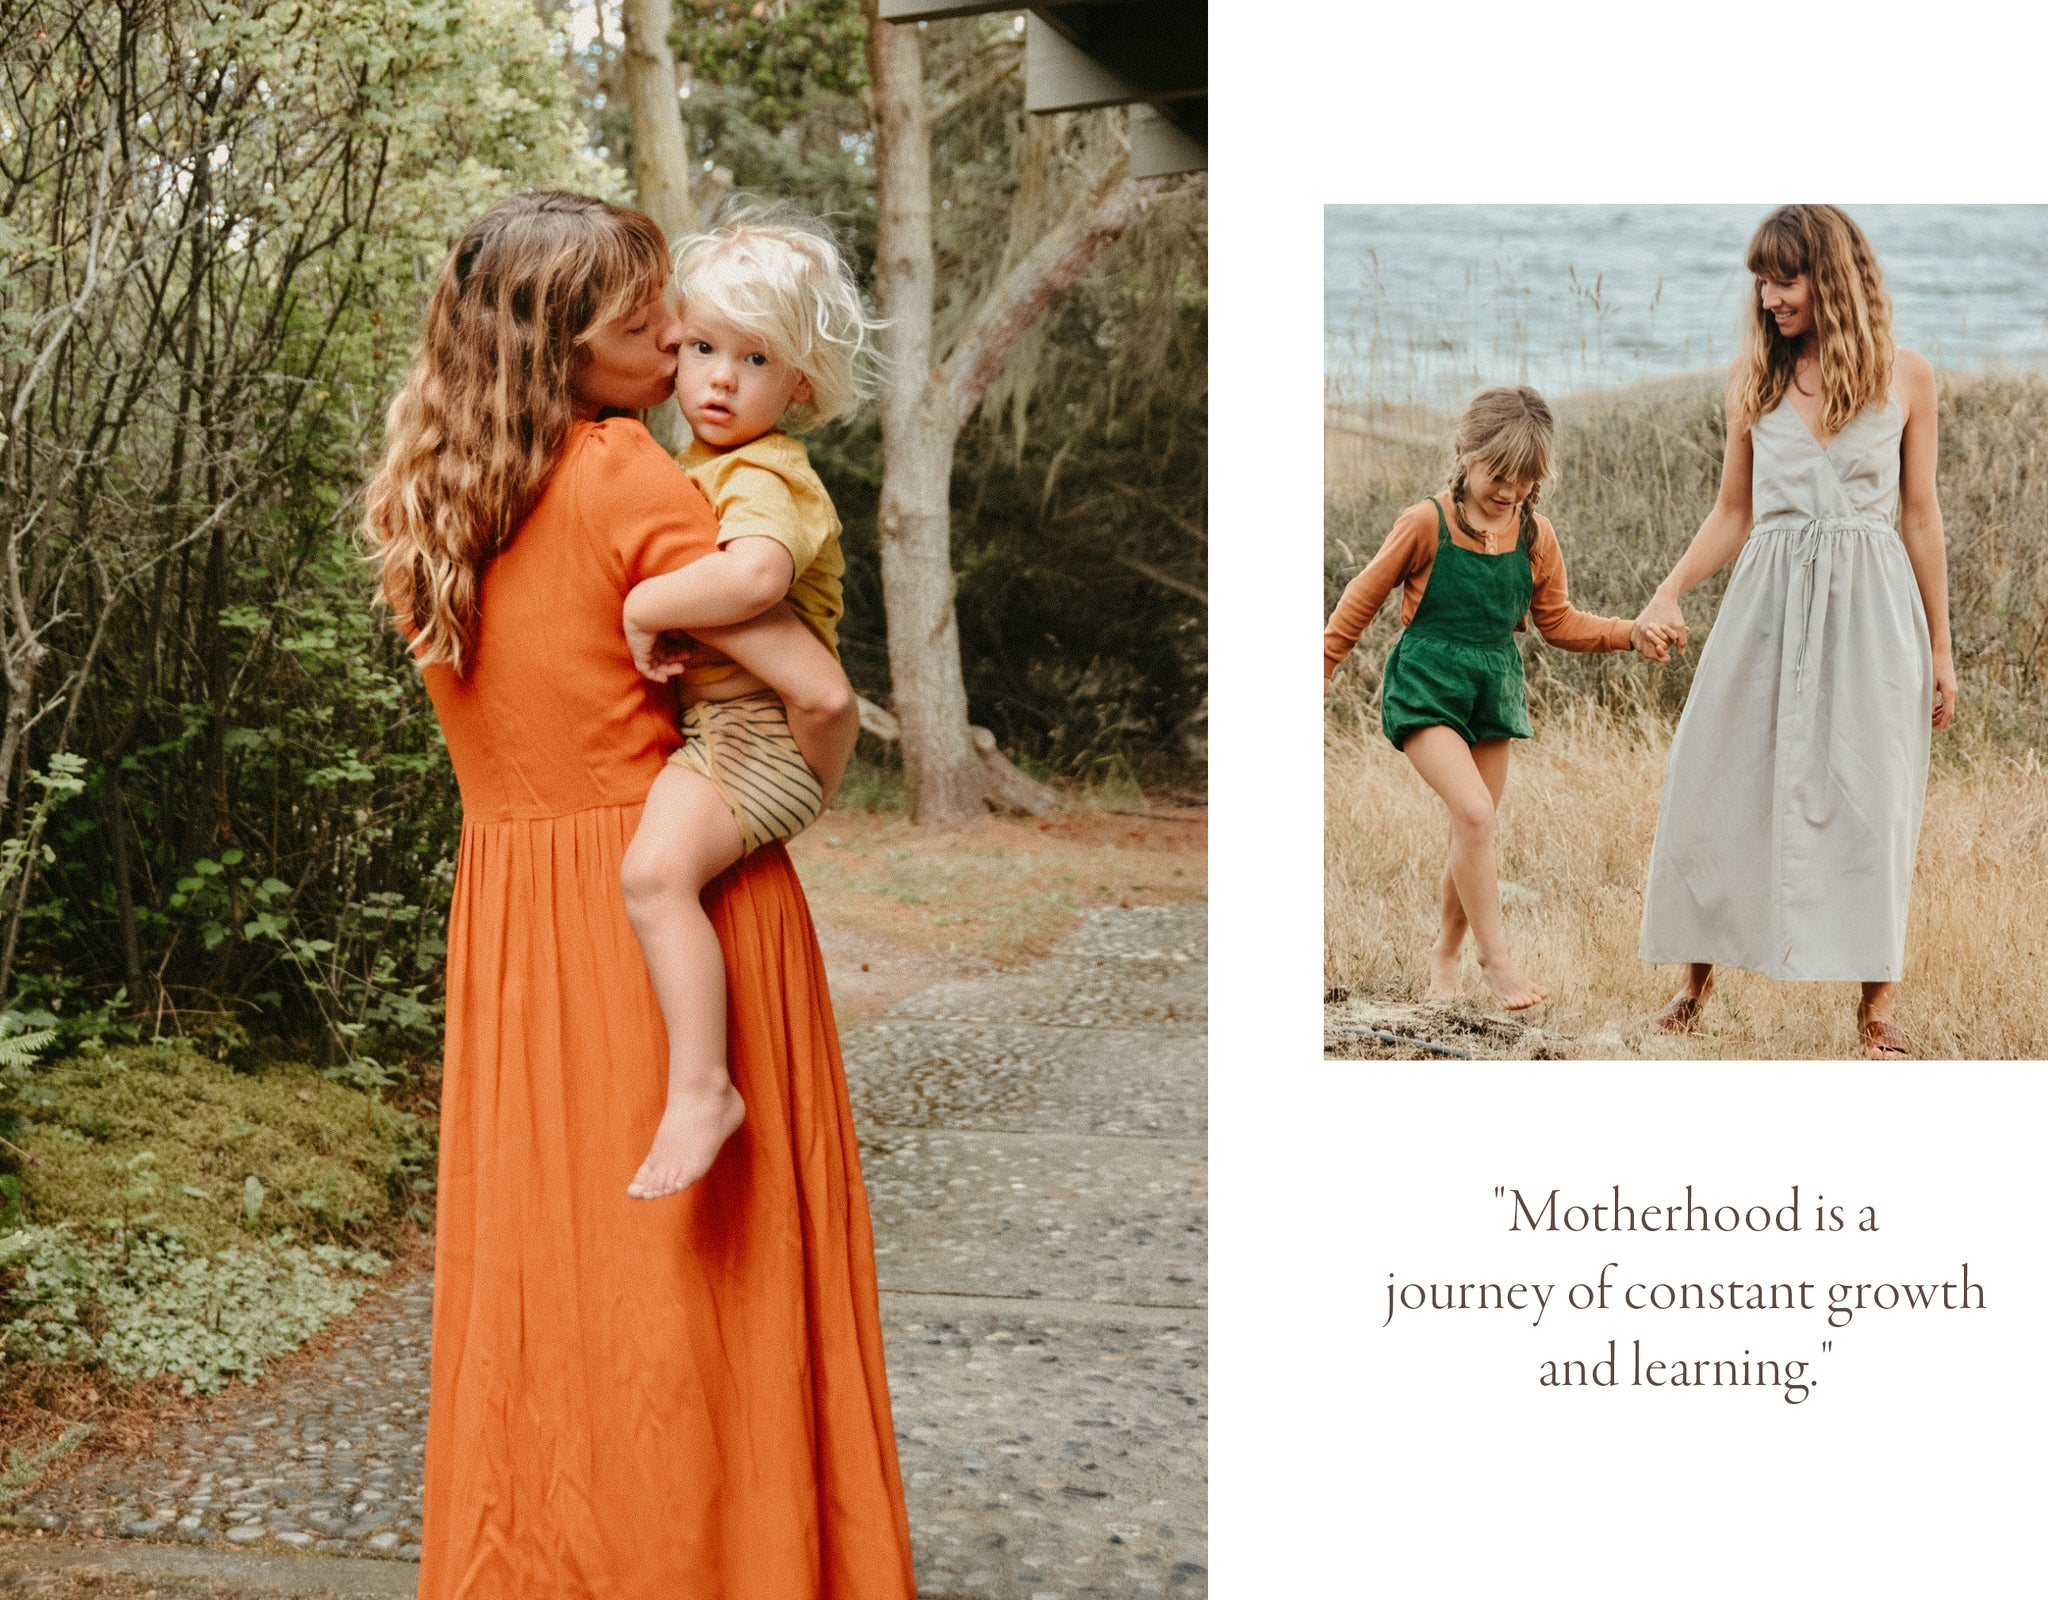 Motherhood is a  journey of constant growth and learning.